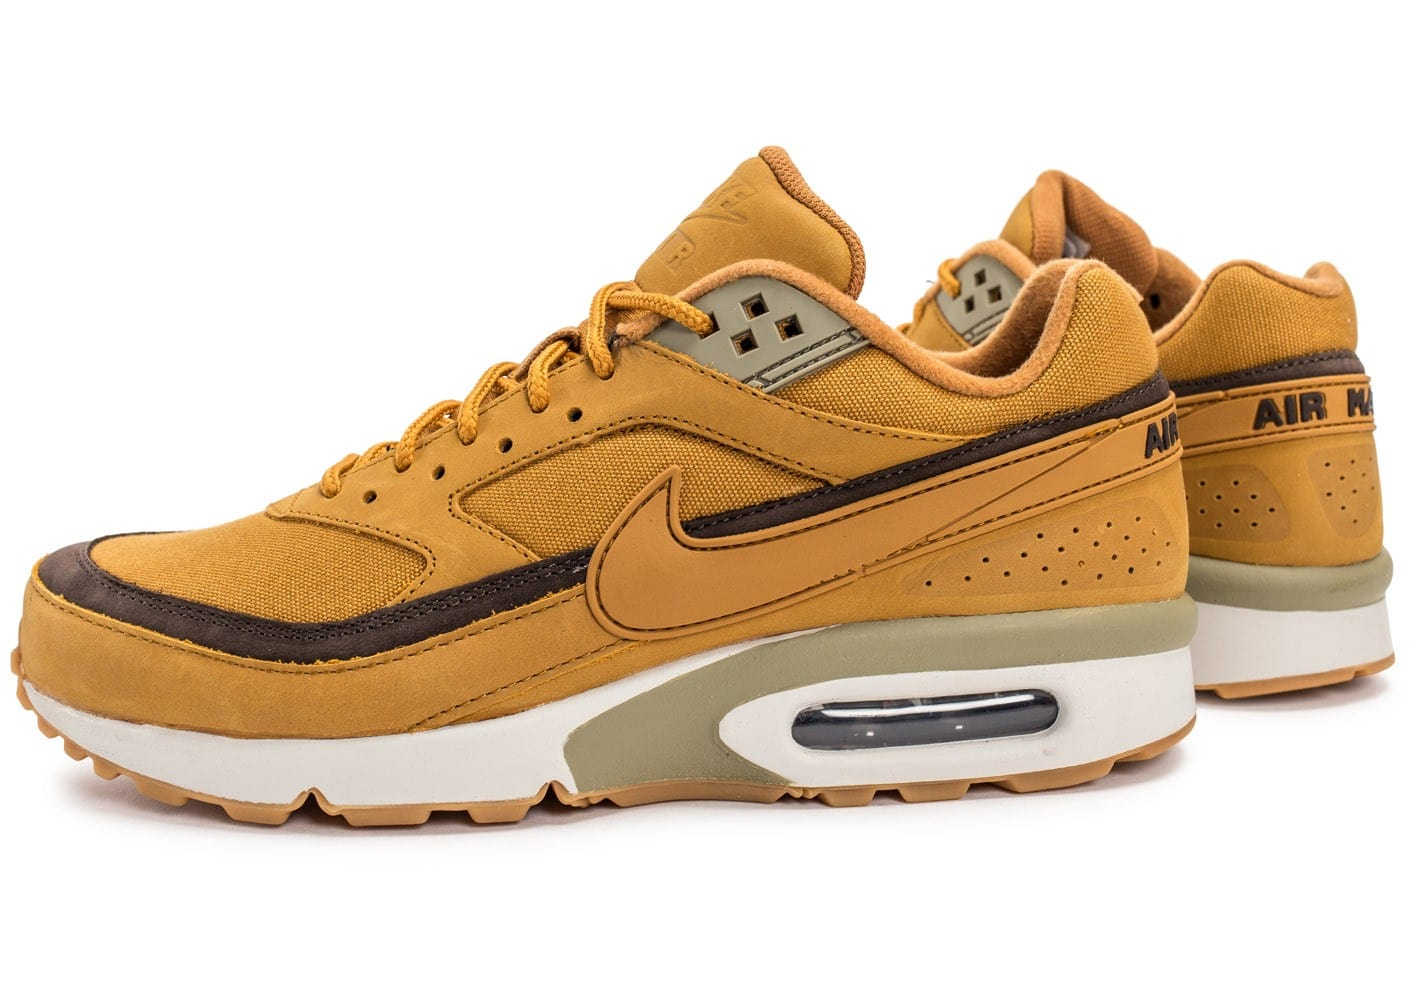 Nike Air Max BW Wheat Chaussures Baskets homme Chausport